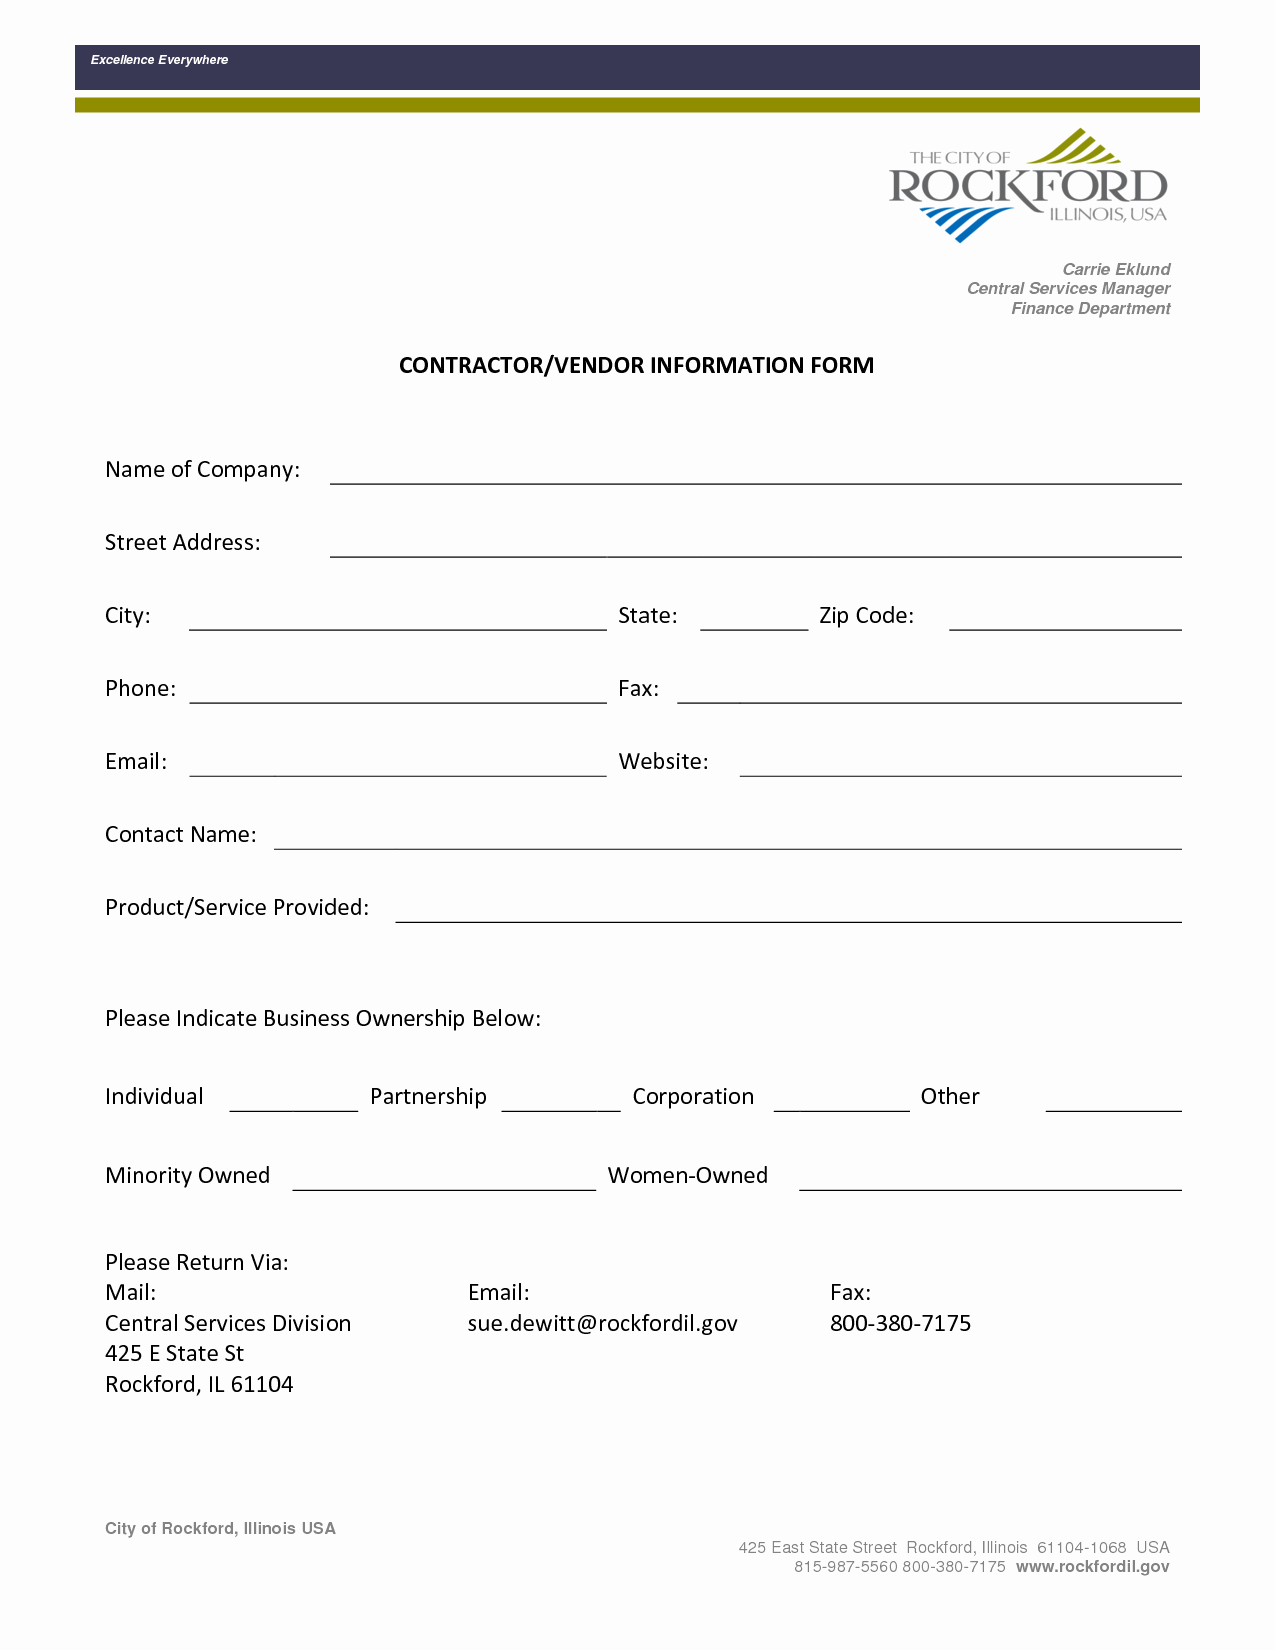 New Vendor form Template Awesome Best S Of Vendor Contact form Vendor Contact